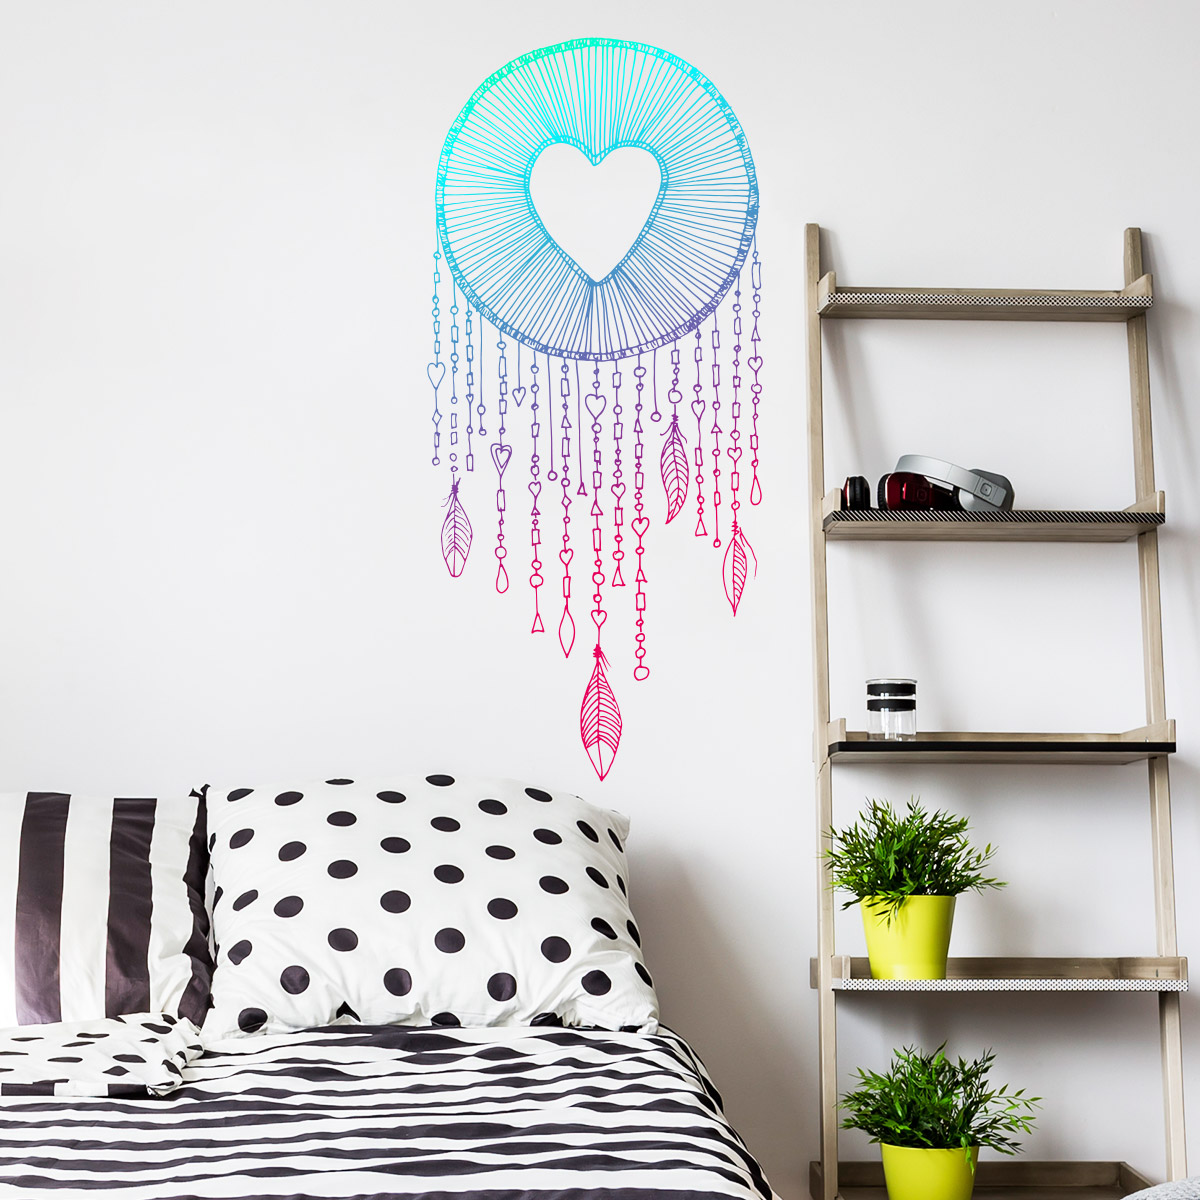 sticker boh me attrape r ves c ur stickers chambre t tes de lit ambiance sticker. Black Bedroom Furniture Sets. Home Design Ideas